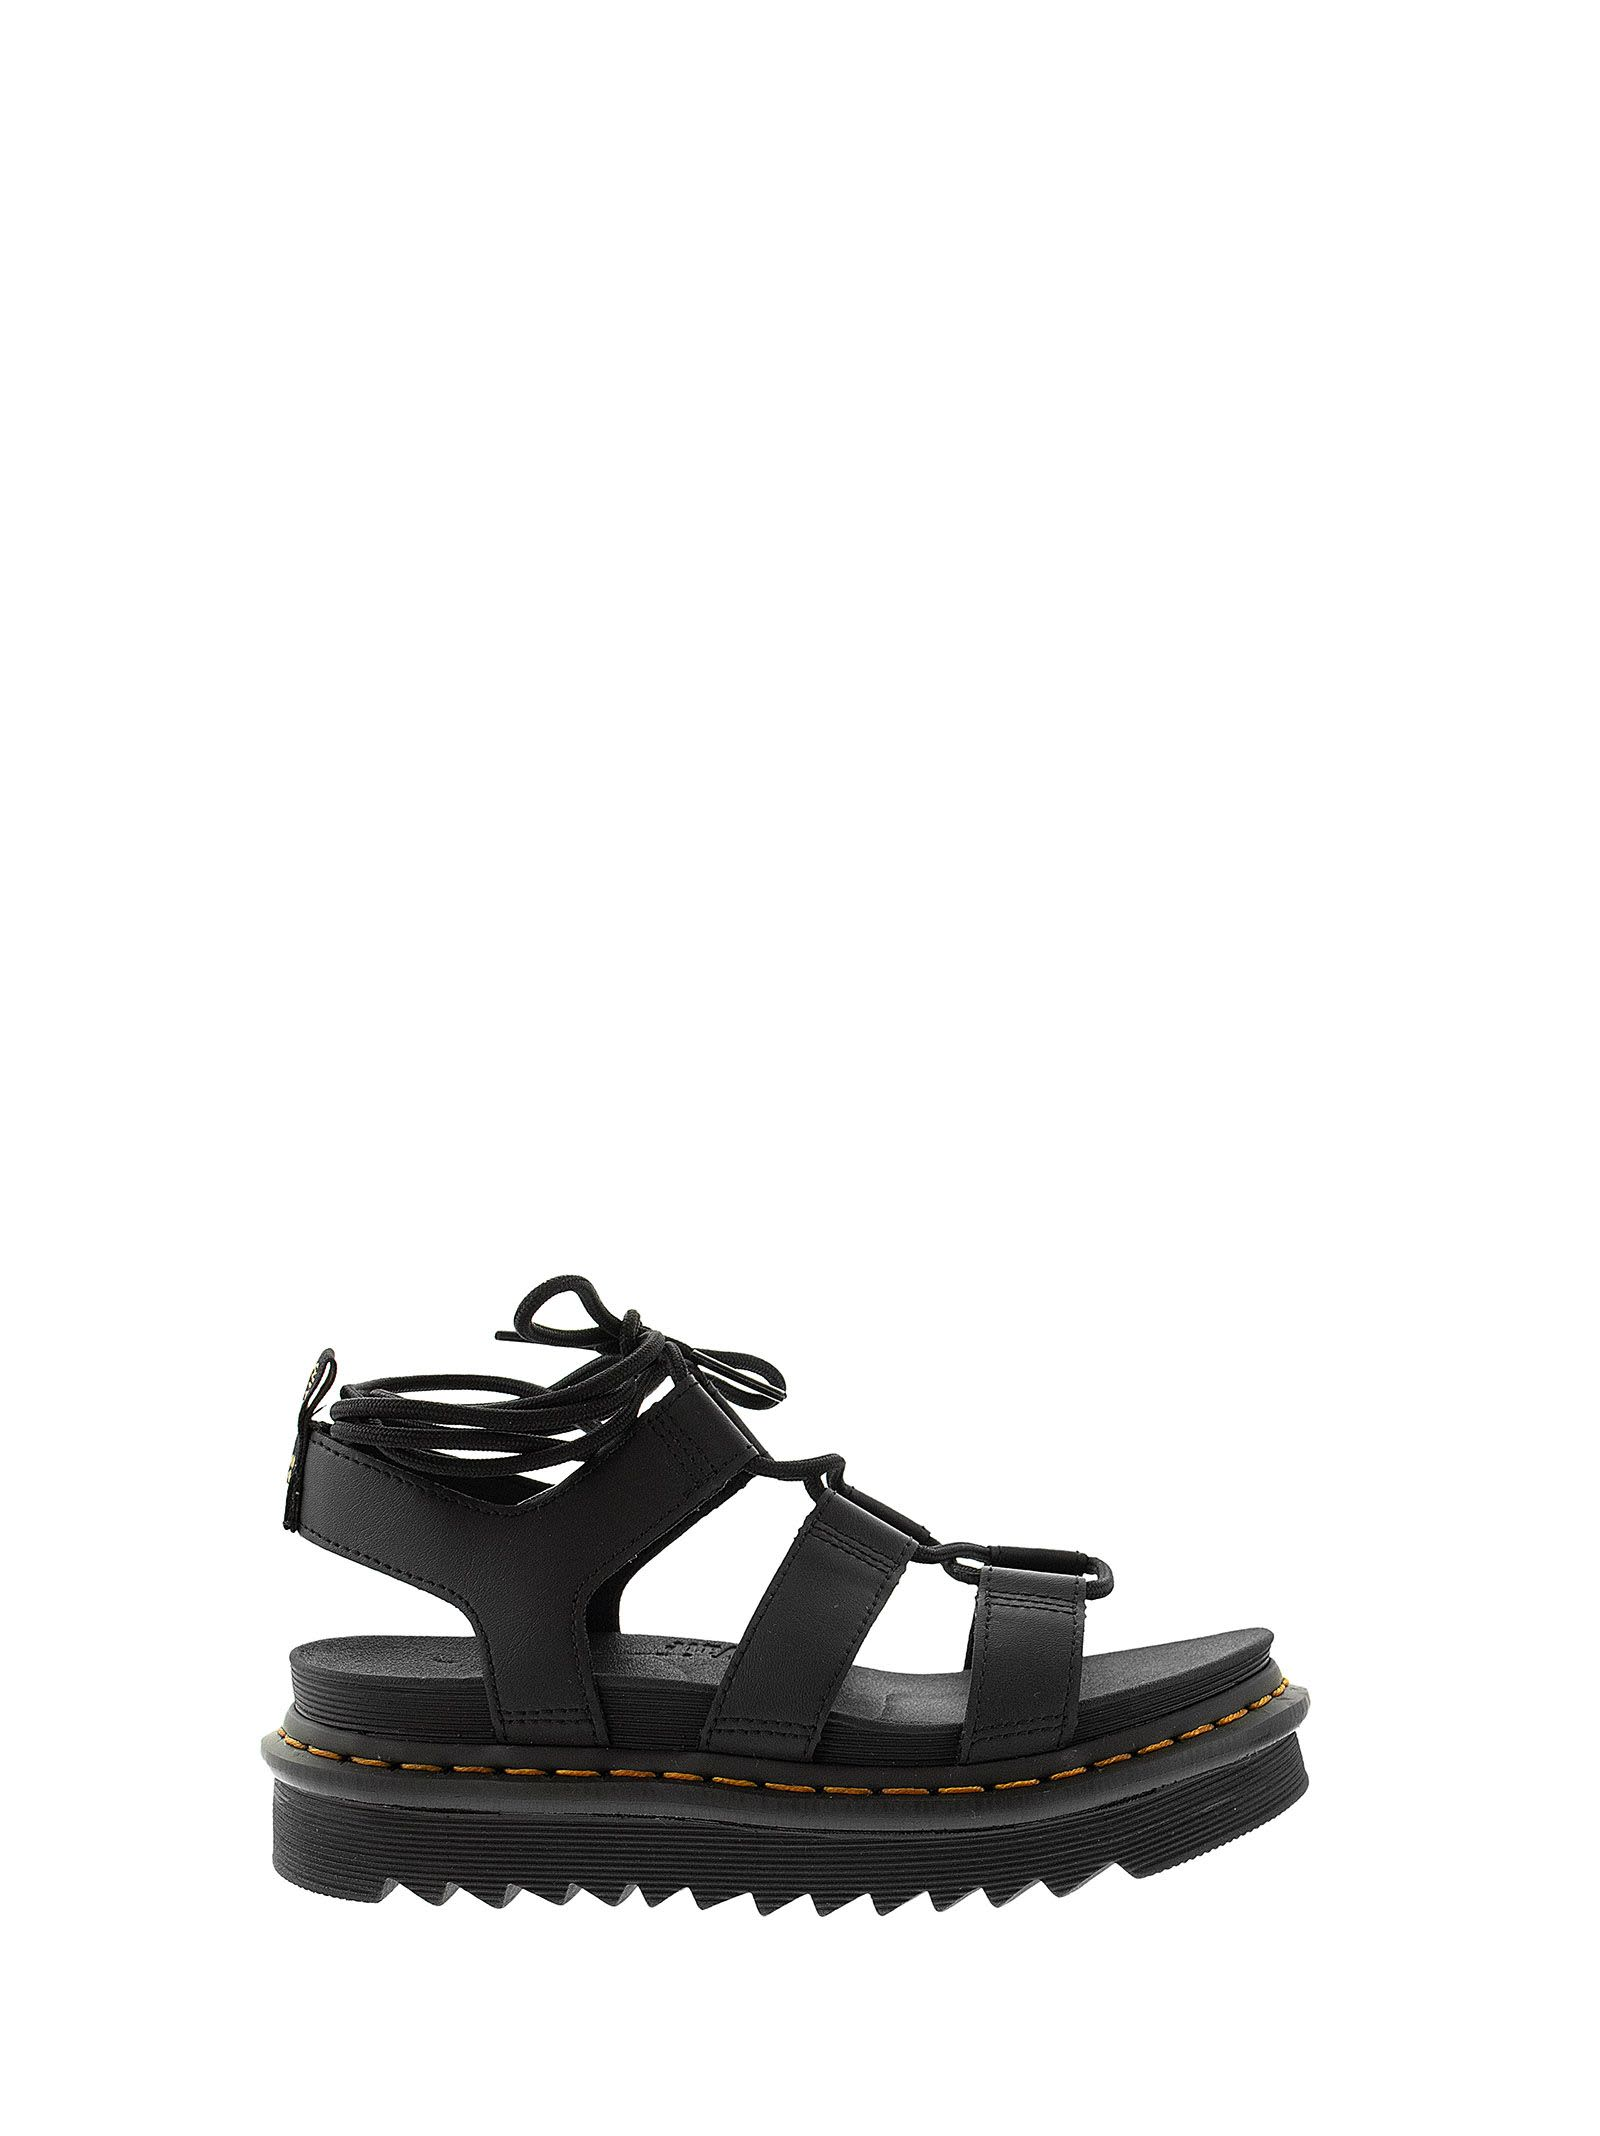 Buy Dr. Martens Nartilla Hydro - Ankle Strap Sandal online, shop Dr. Martens shoes with free shipping